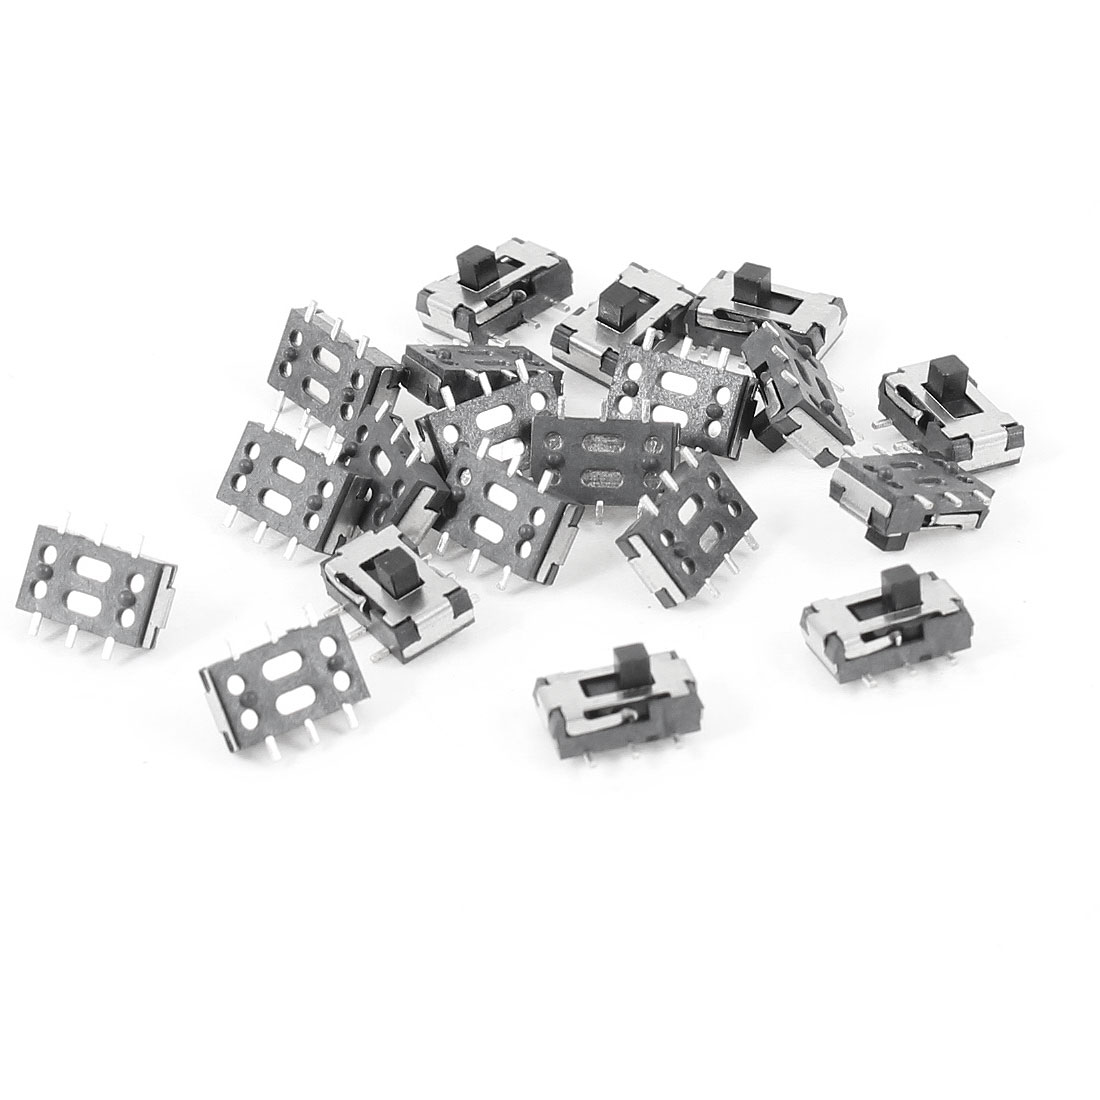 20 Pcs 7x4x2mm On/Off/On DPDT 2P2T 6 Pin Vertical Mini SMD SMT Slide Switch